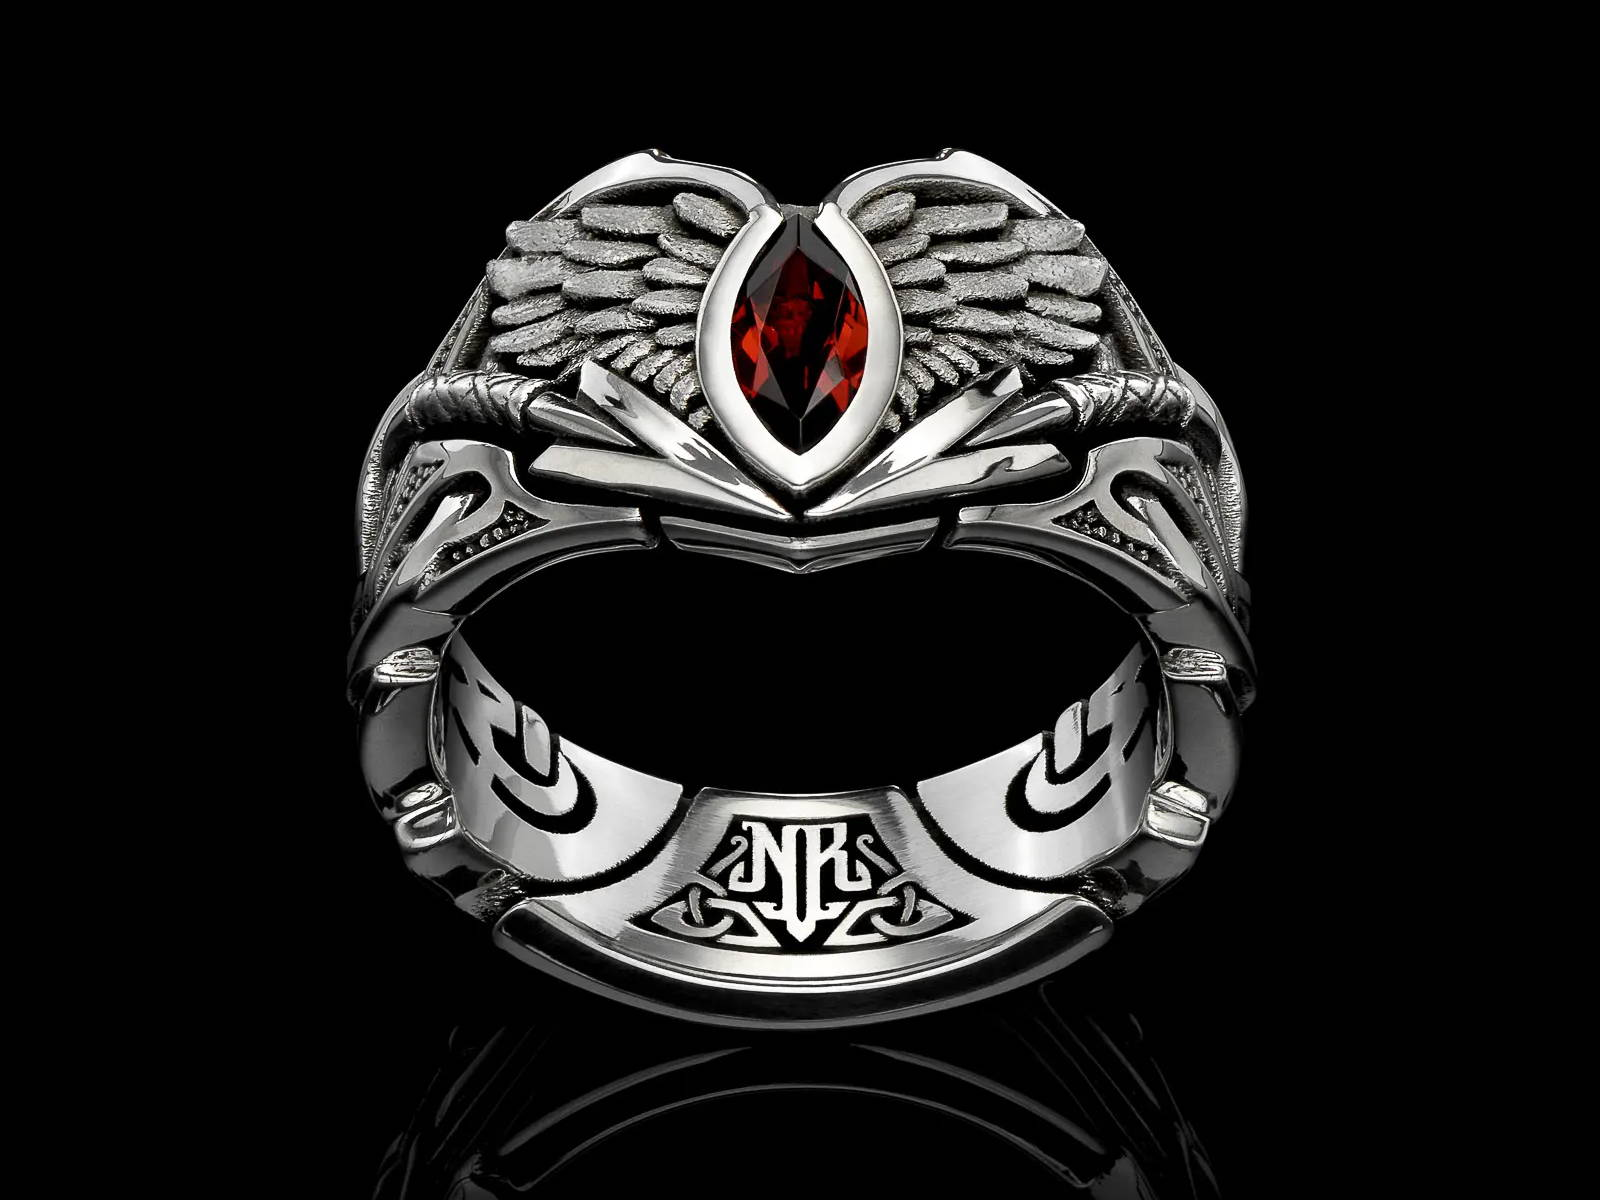 The Valkyria Band - A Valkyrie Ring for the Modern Woman Warrior